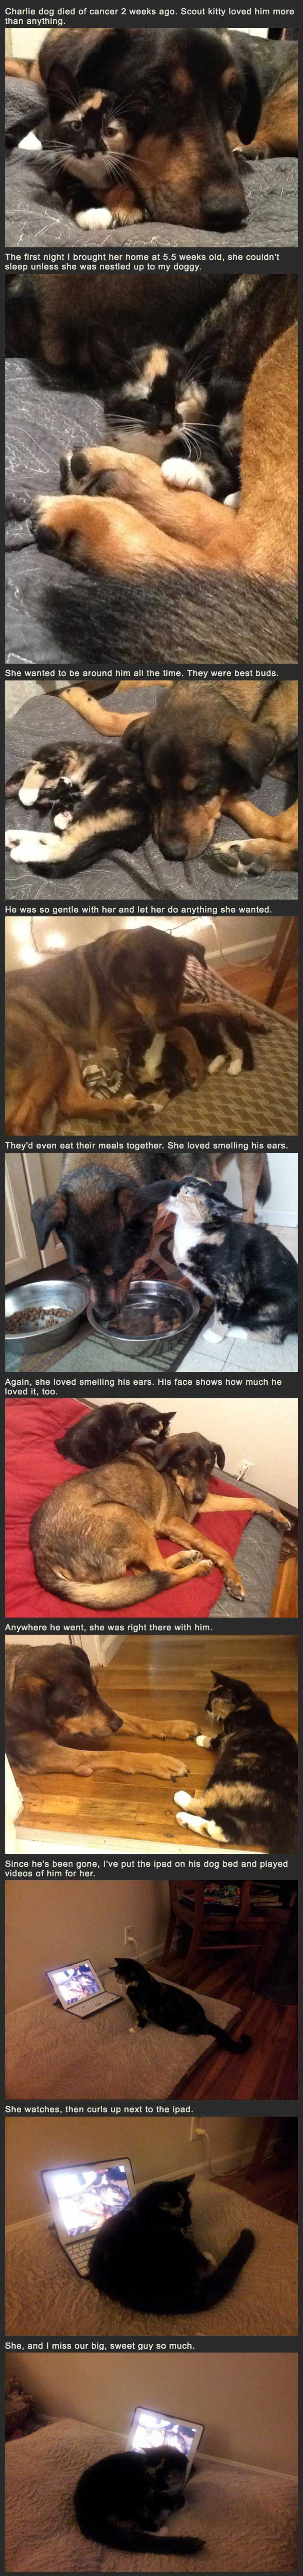 My dog died of cancer 2 weeks ago; my cat misses him. This story is heartbreaking, but it's true love at it's highest.